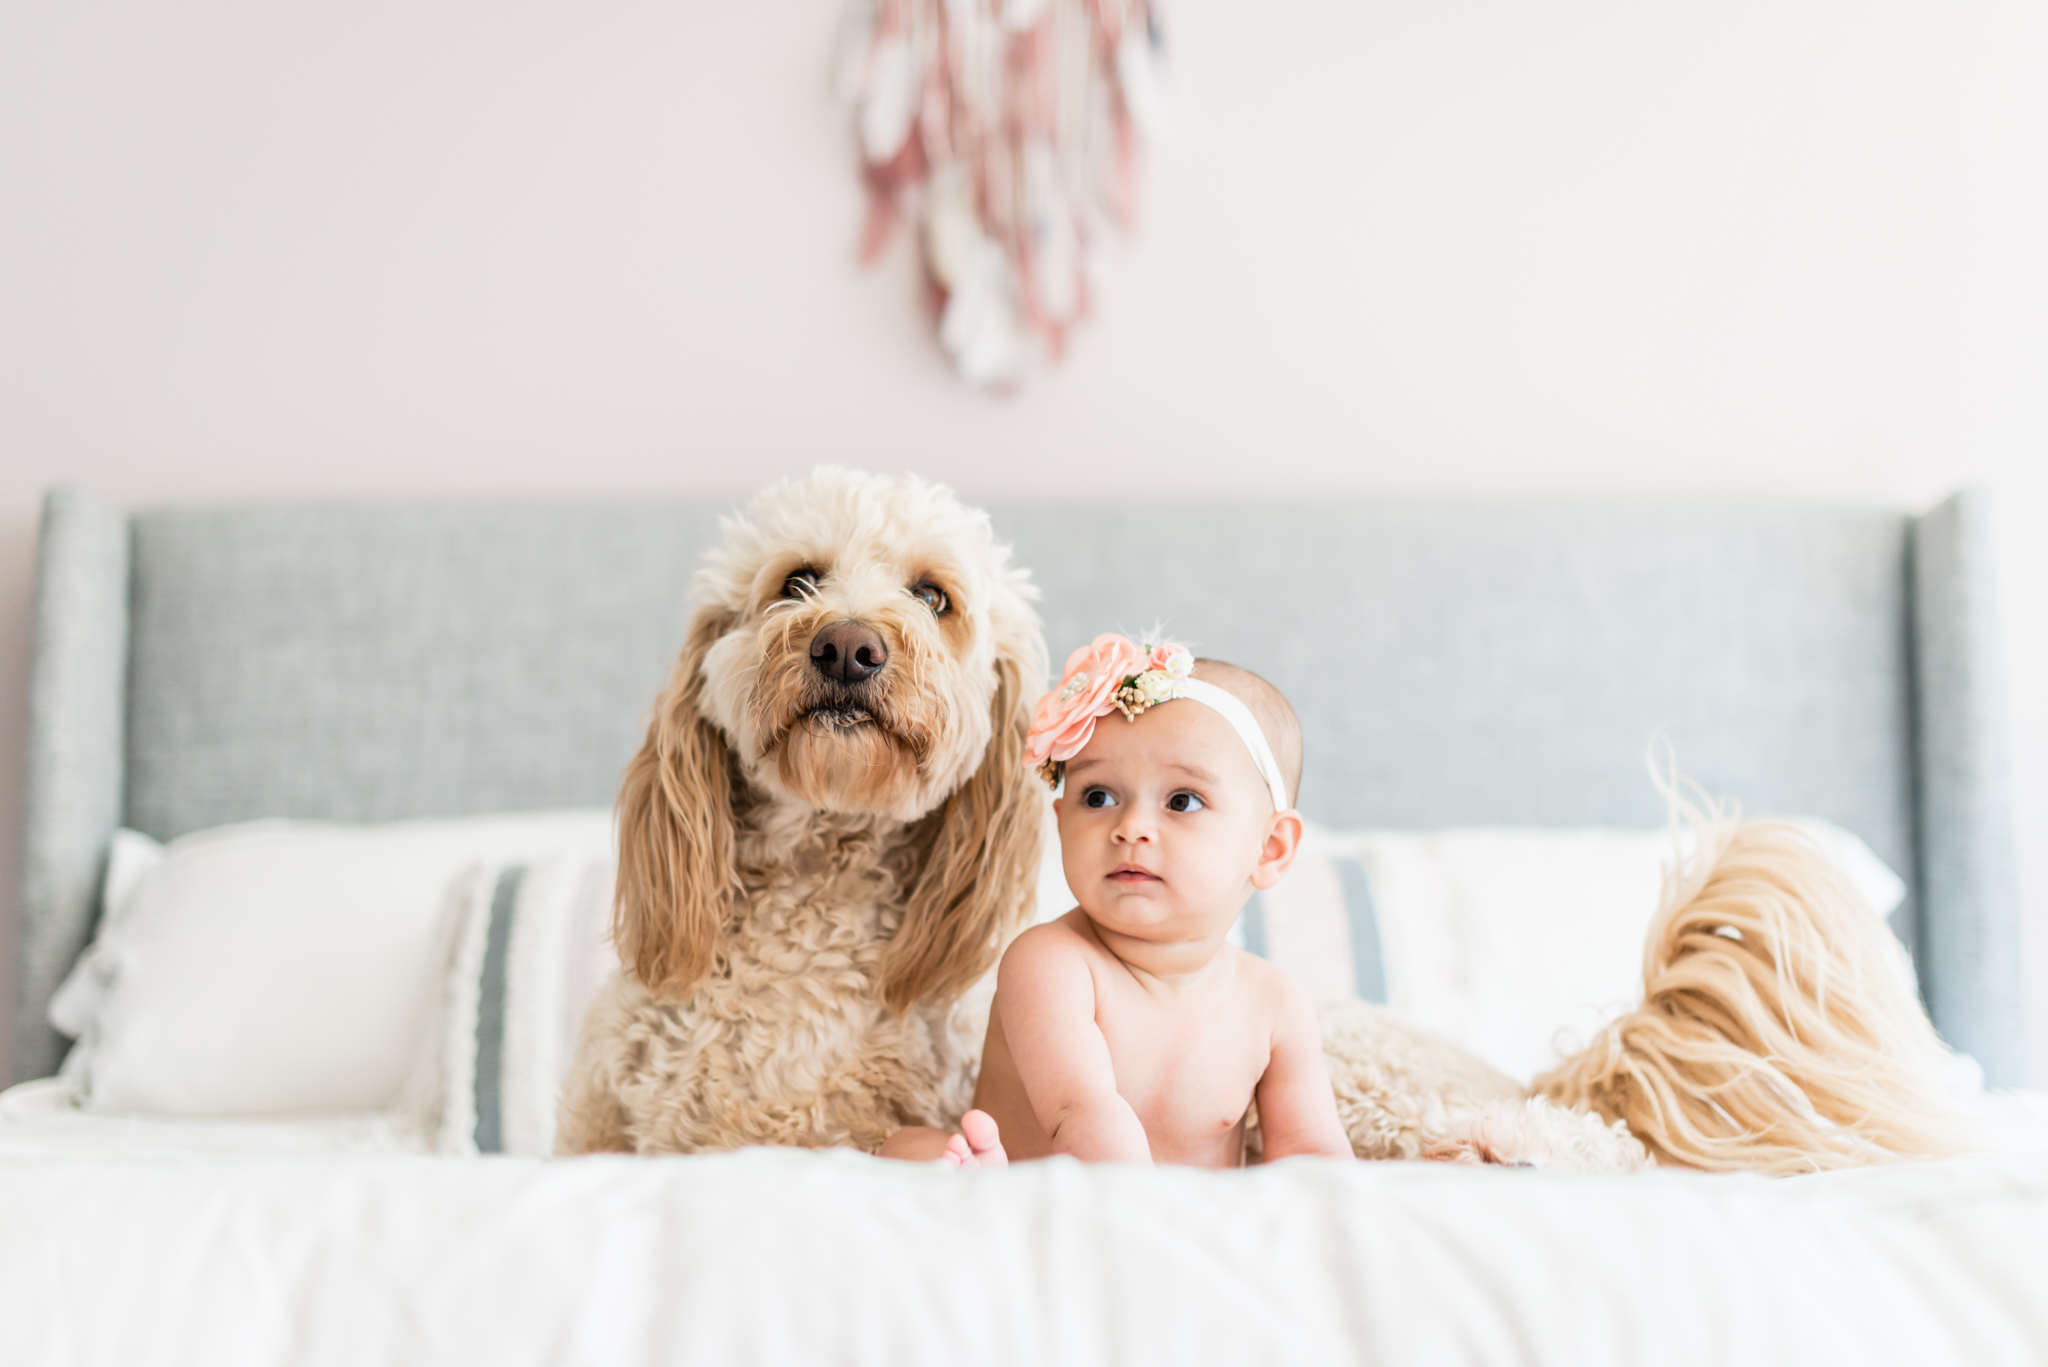 Baby girl and her puppy at the family lifestyle shoot